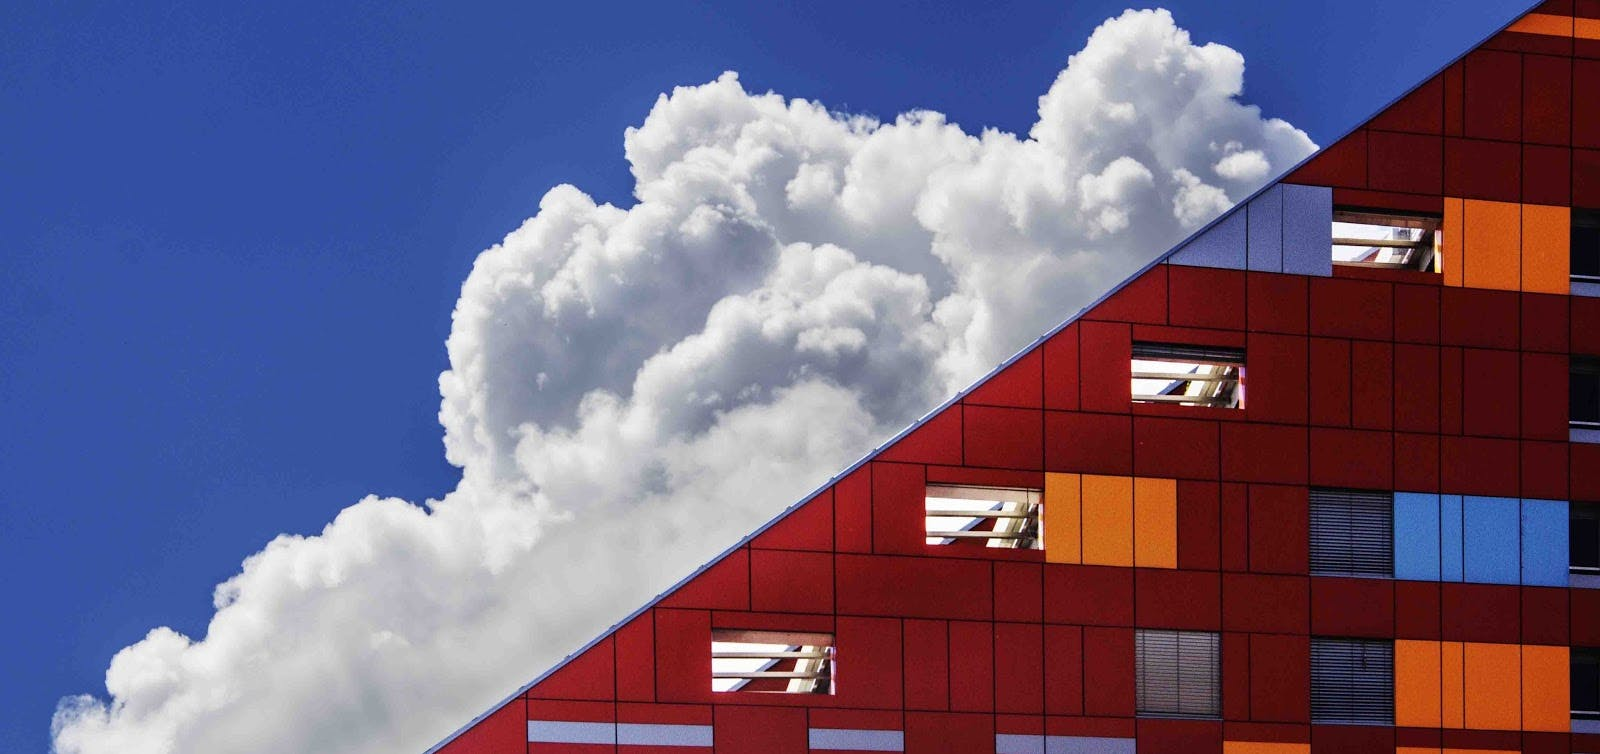 Building with clouds in background.